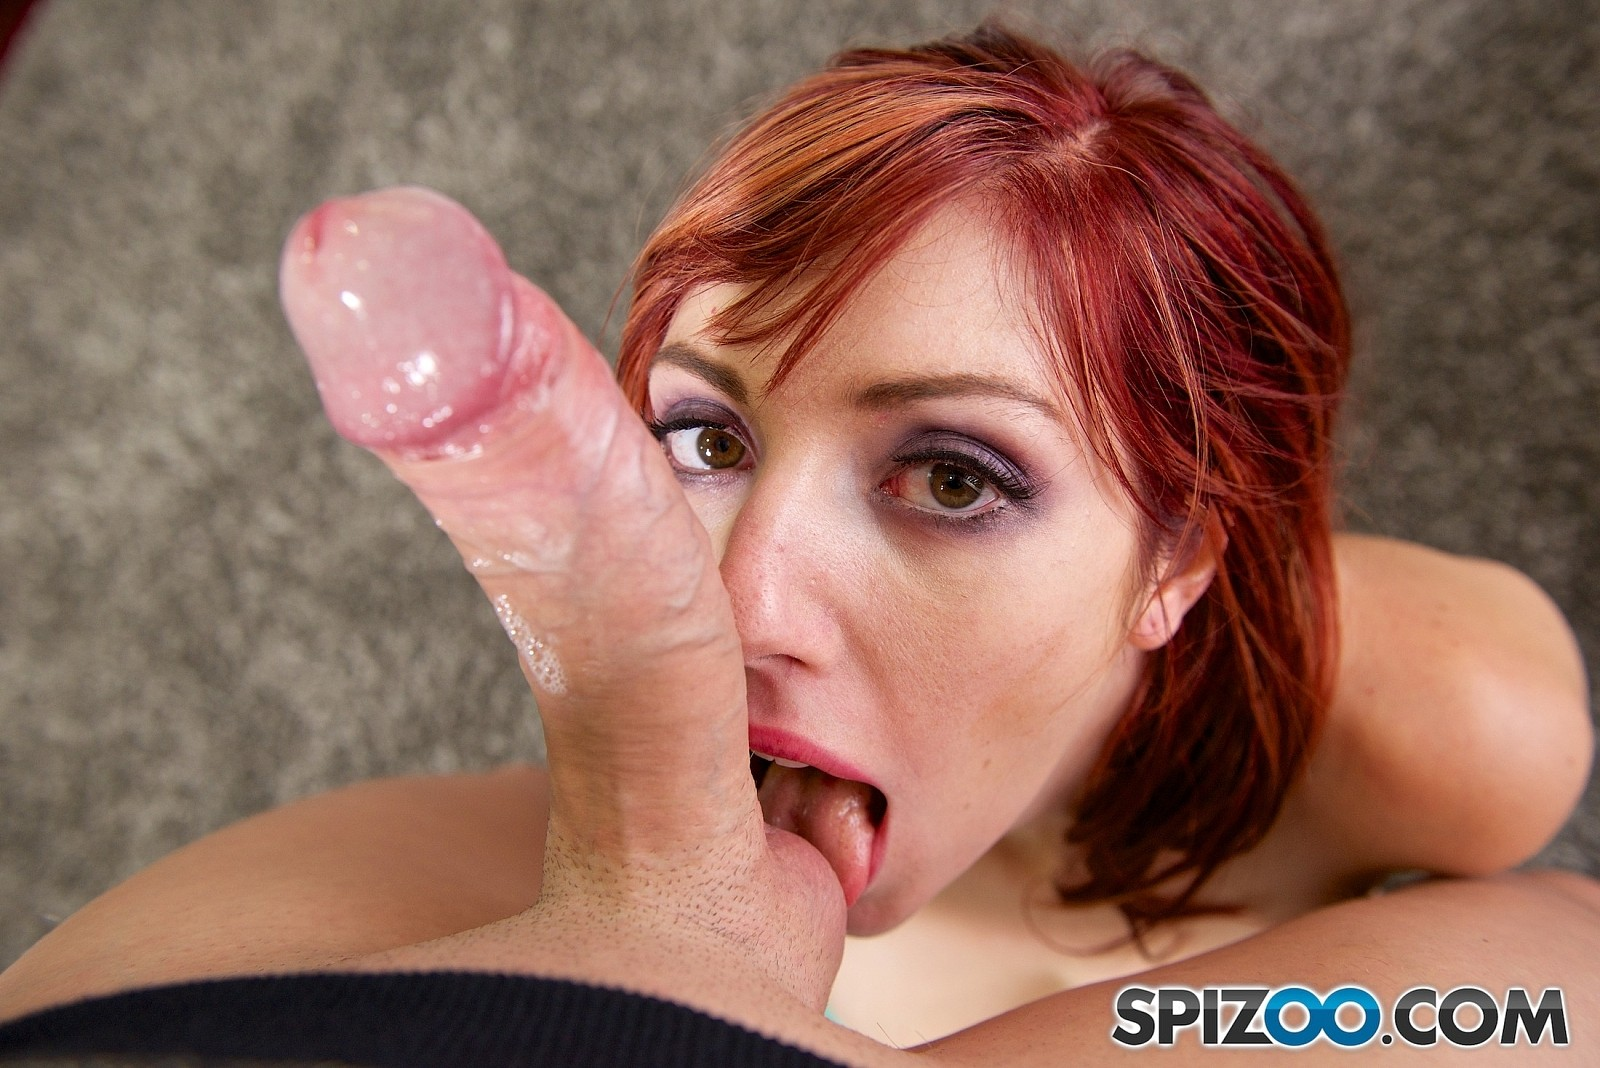 Christie stevens pussy gets some cock in it 5